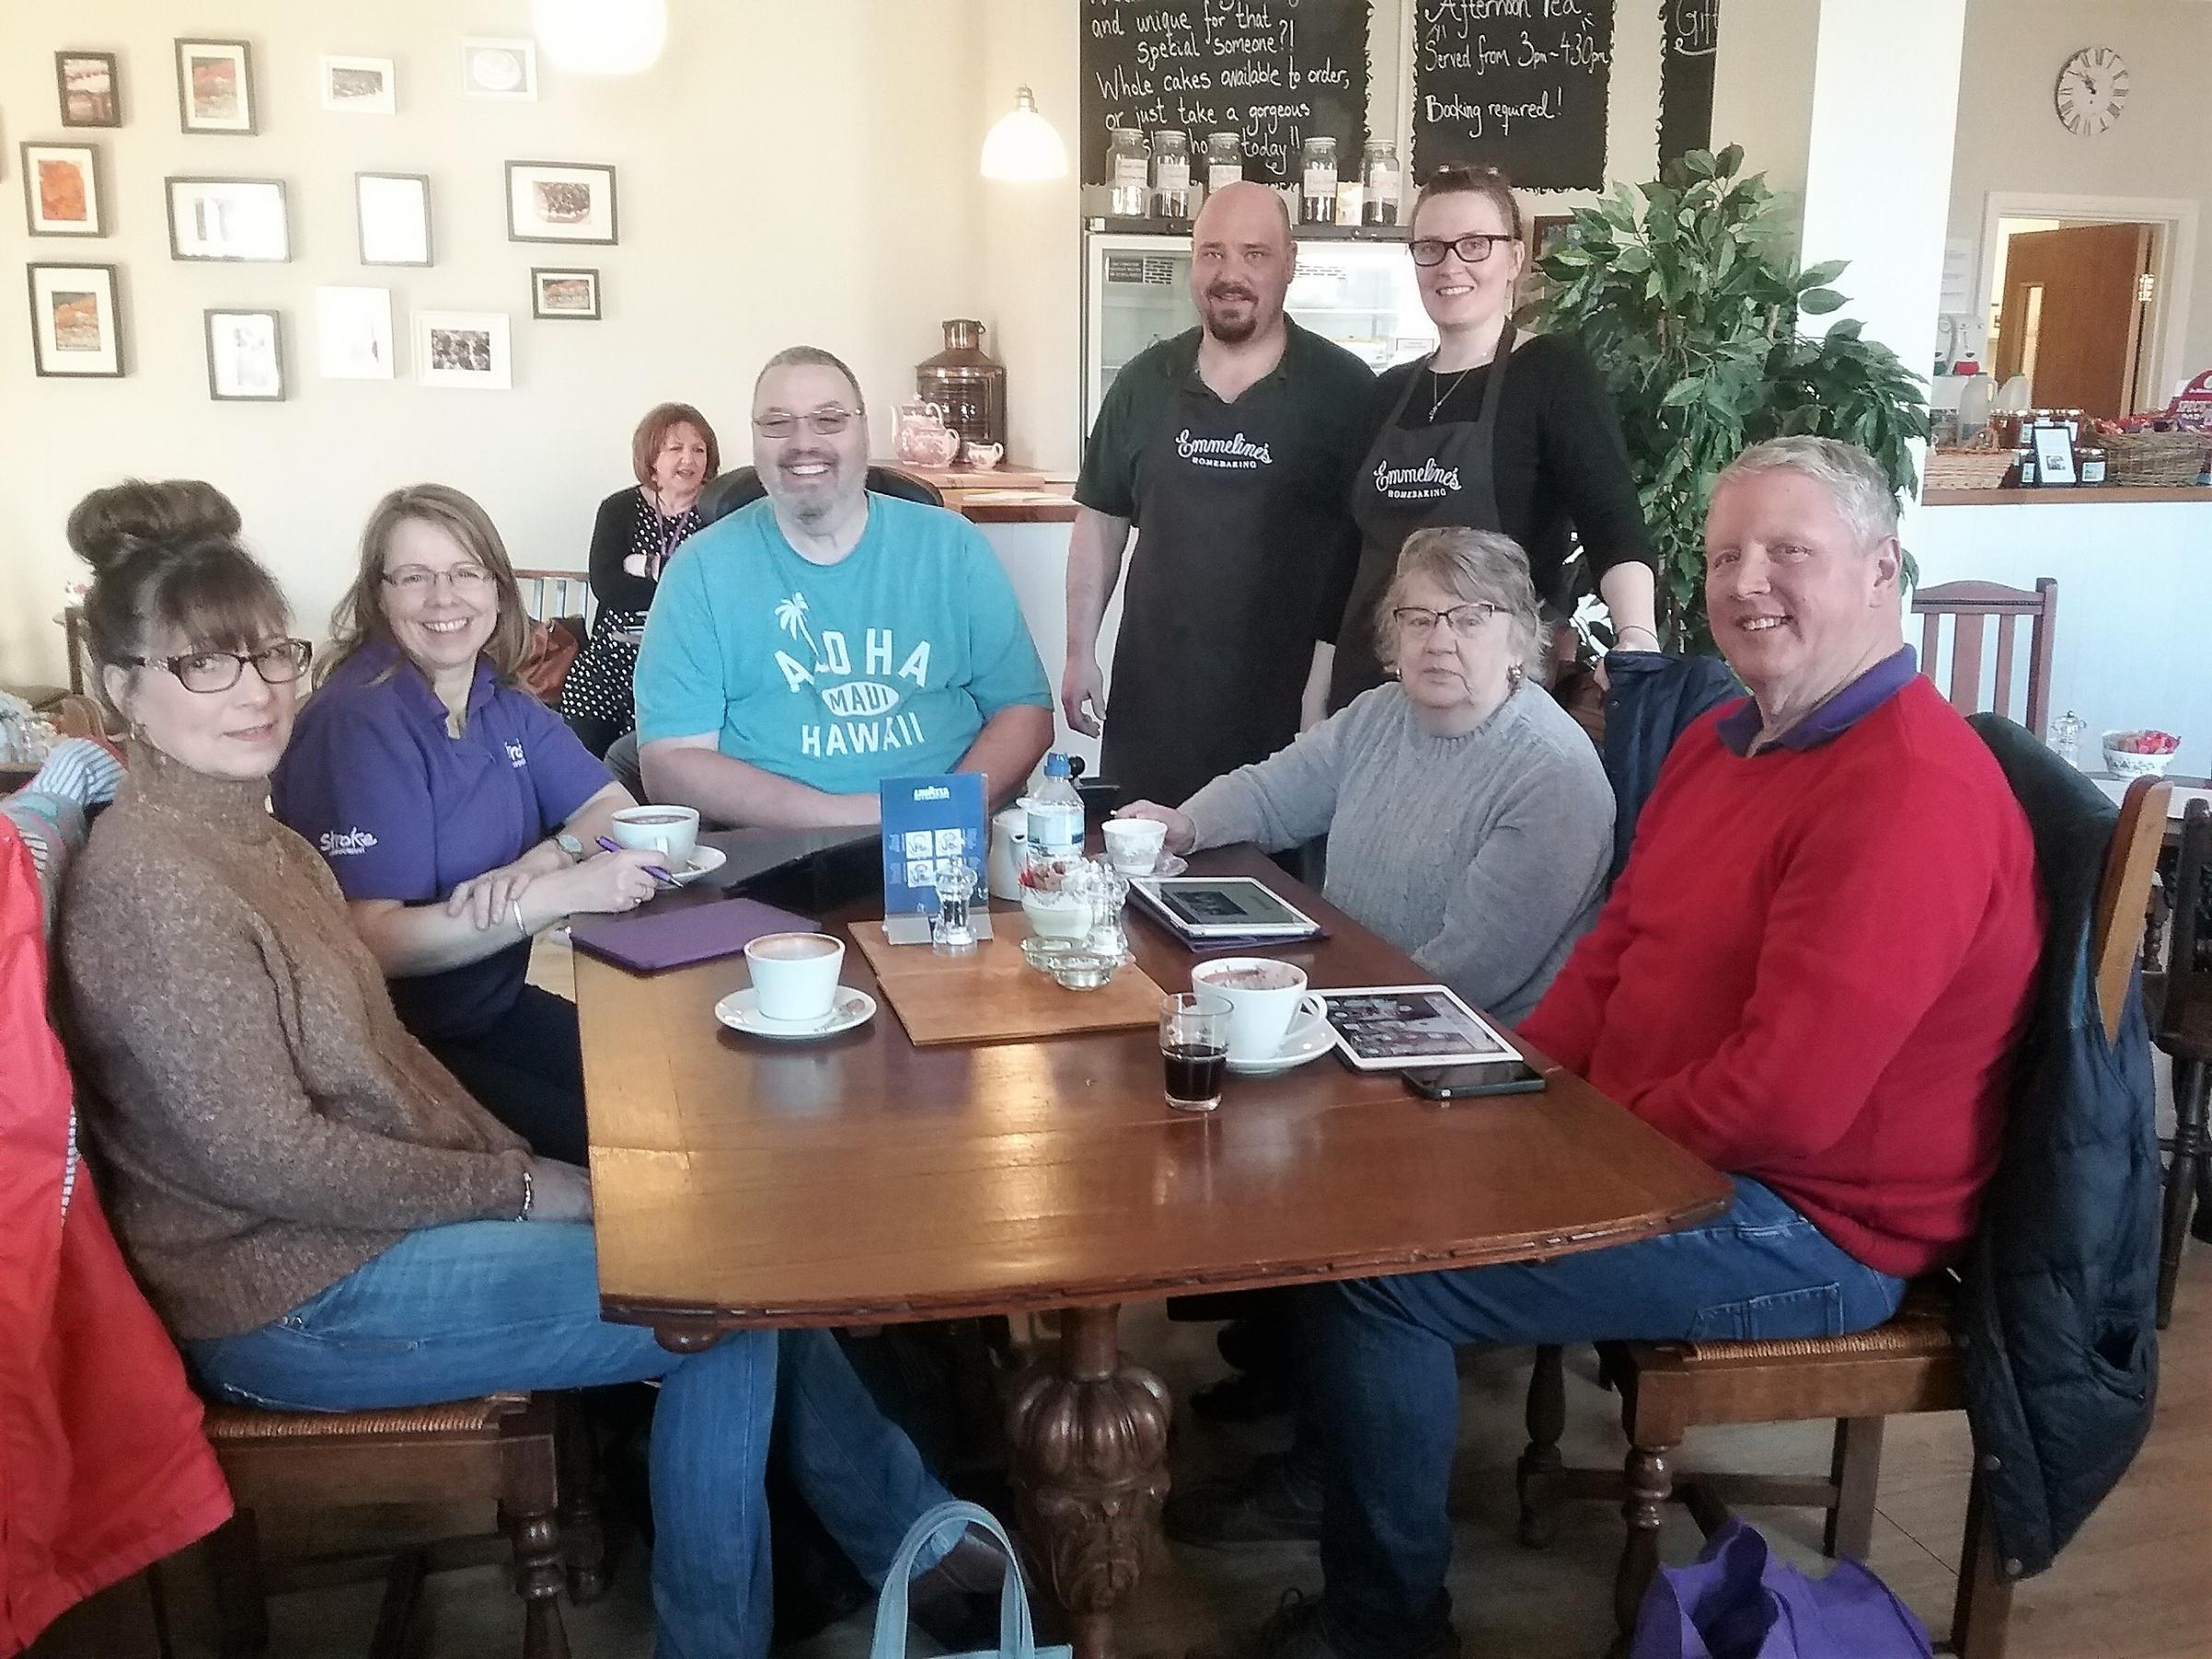 A group meeting at Emmeline Tea Room in Abergavenny helps stroke survivors with aphasia regain their independence with the support of others affected by stroke